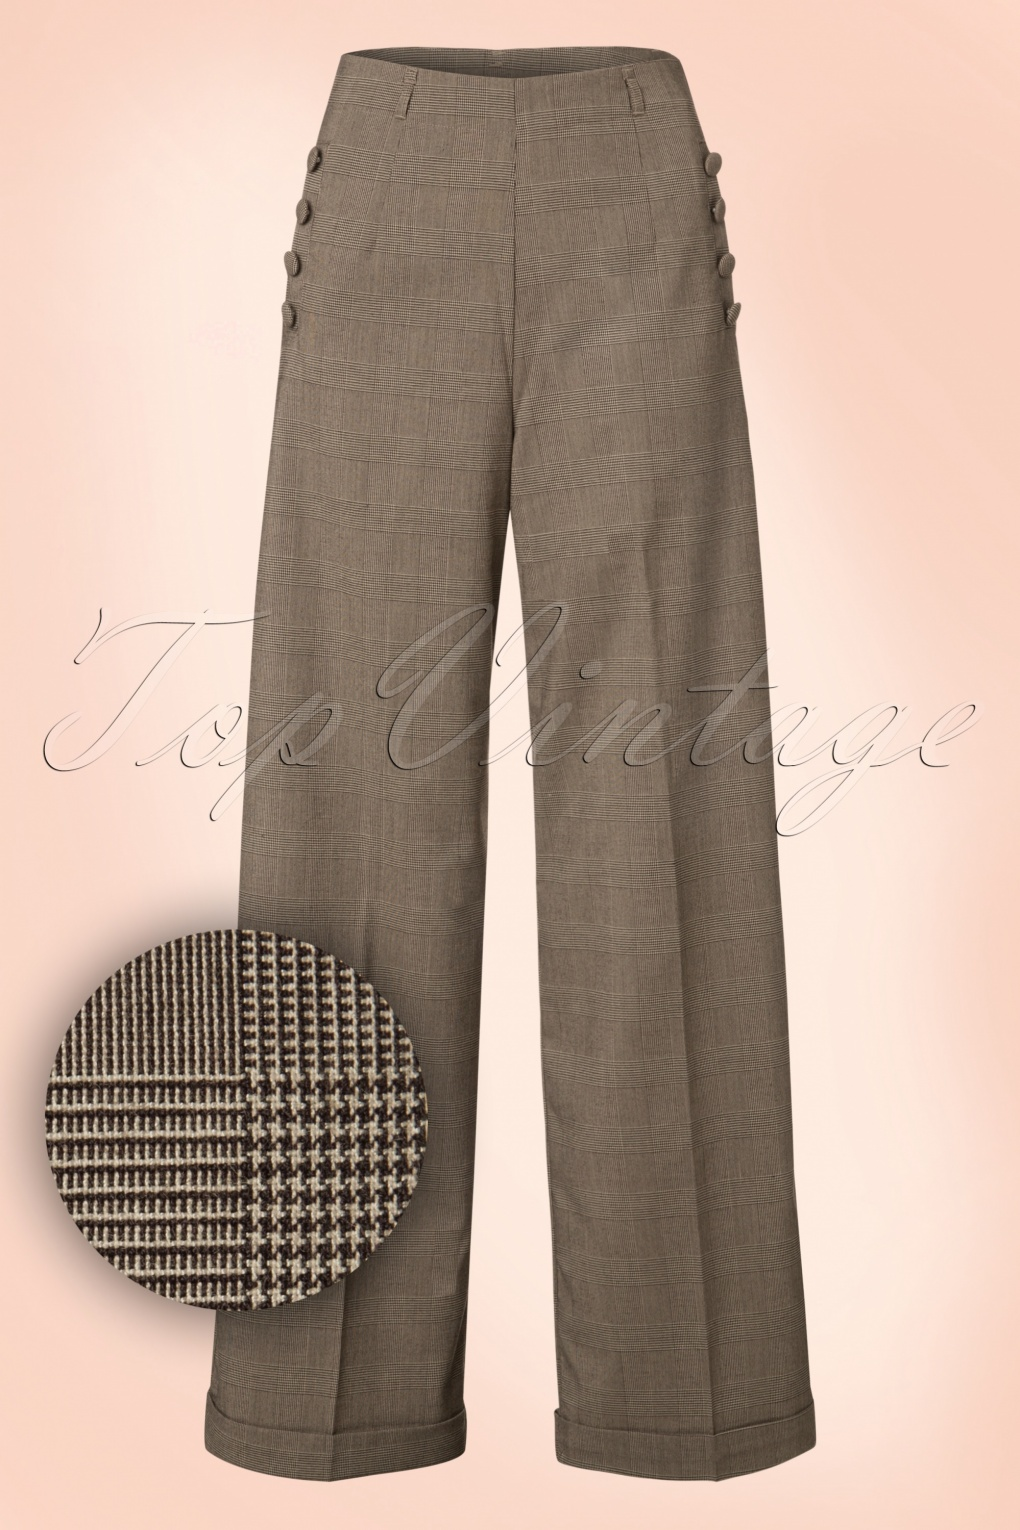 Vintage High Waisted Trousers, Sailor Pants, Jeans 40s Style Crush Check Trousers in Brown £40.14 AT vintagedancer.com